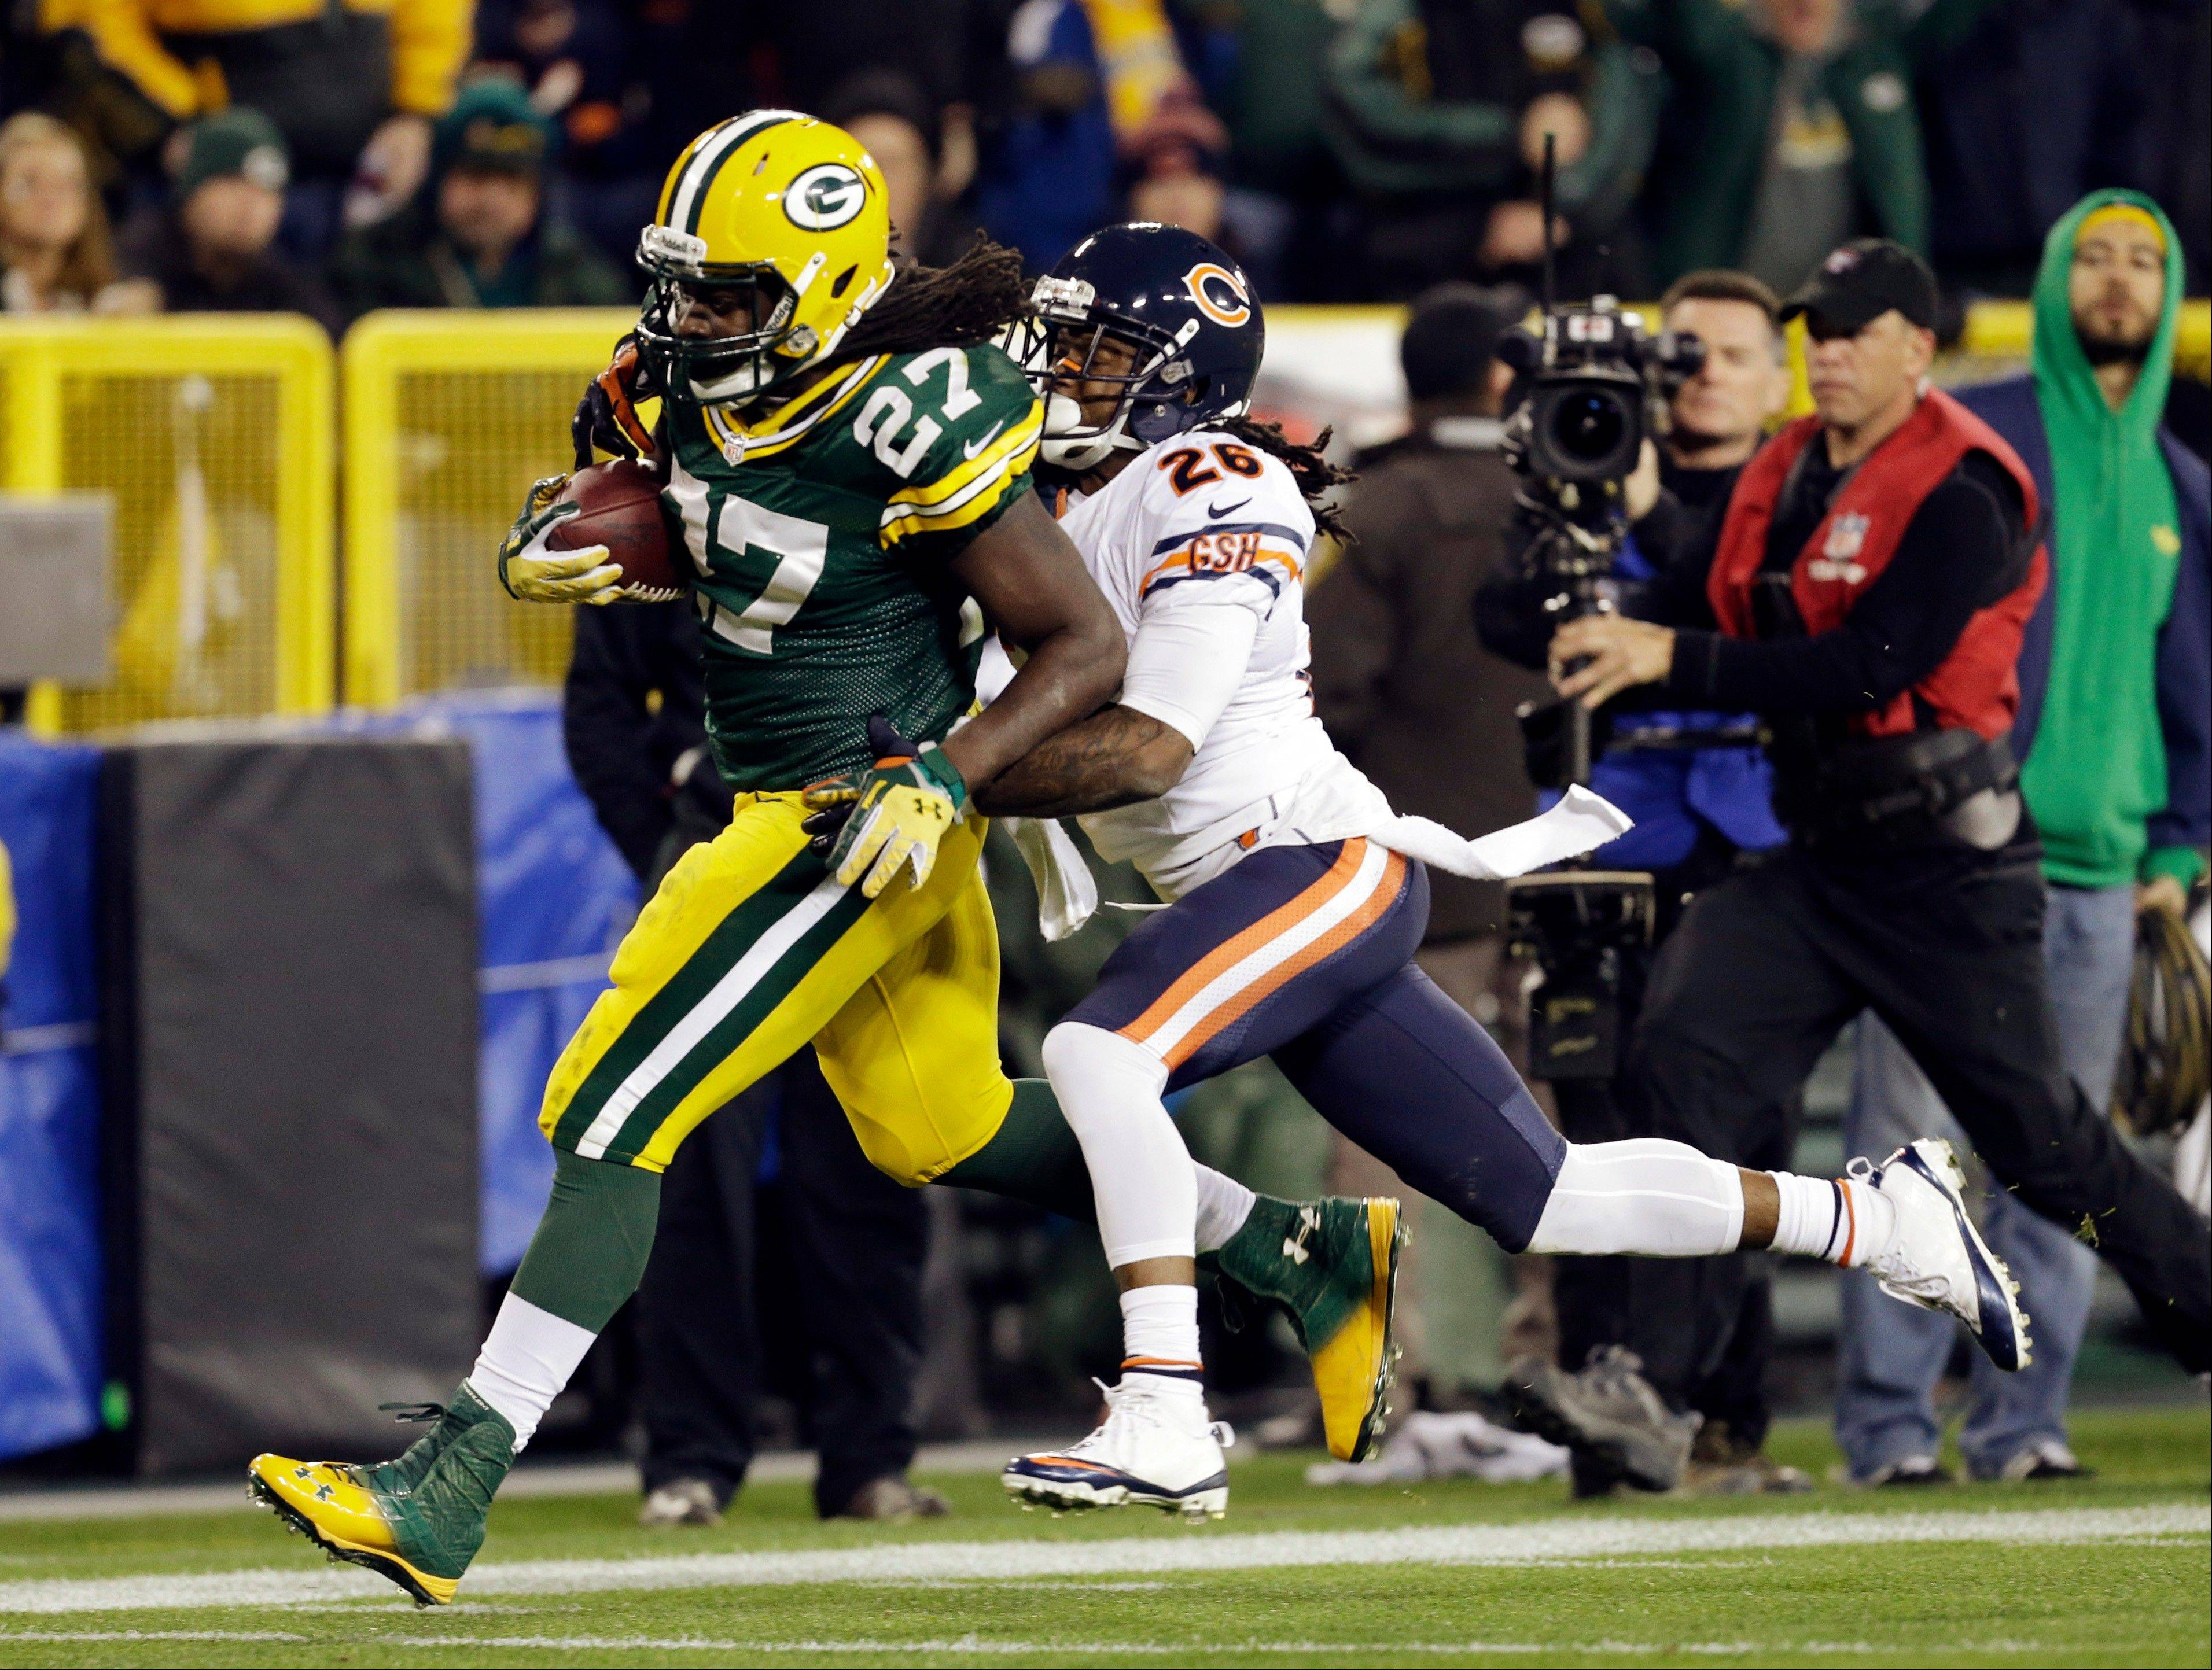 Green Bay Packers' Eddie Lacy breaks away from Chicago Bears' Tim Jennings for a 56-yard run during the second half .